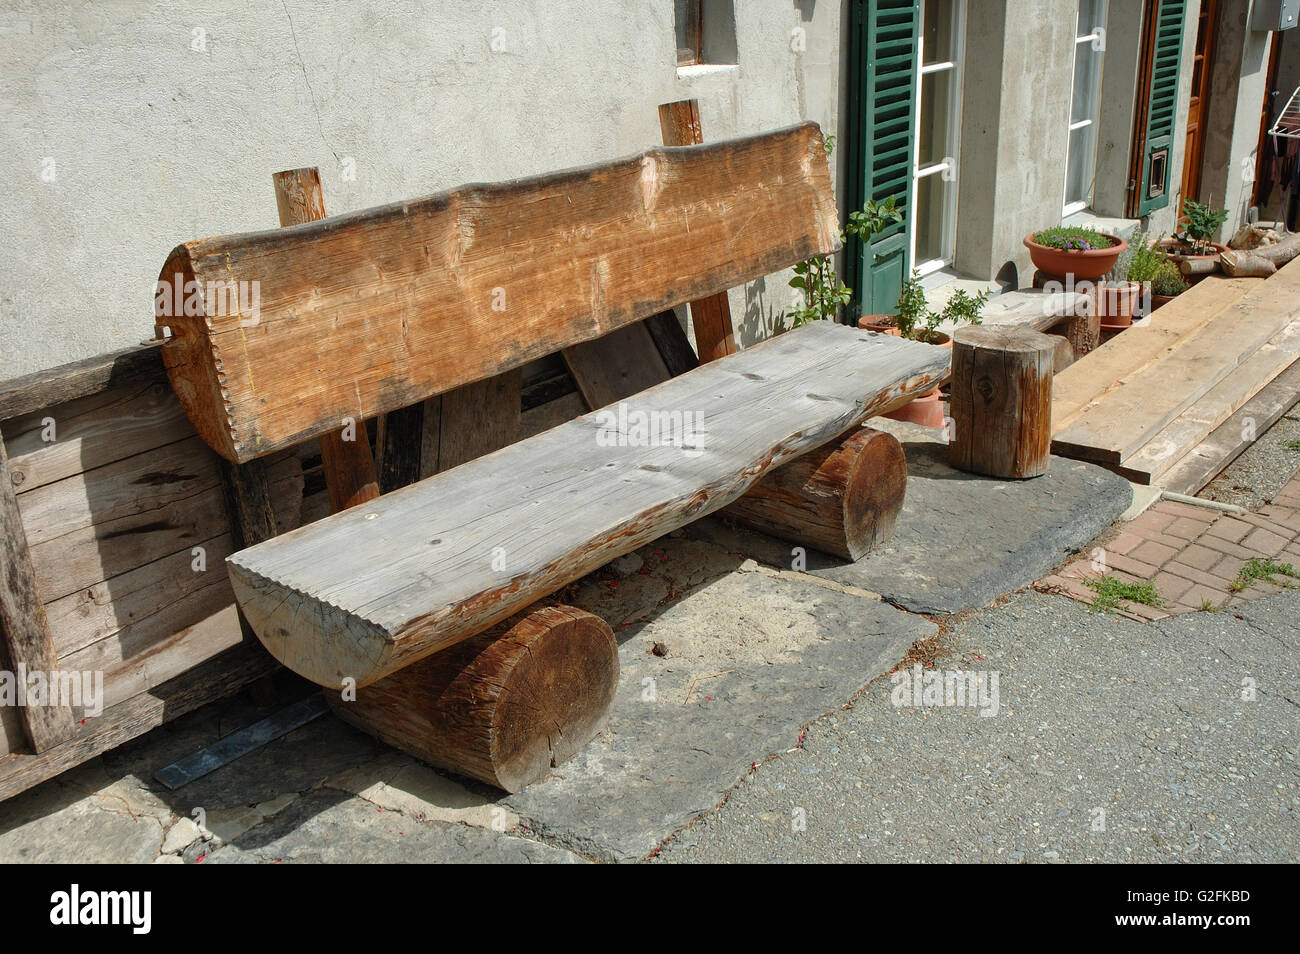 old wooden bench made of tree trunk standing at building wall stock image